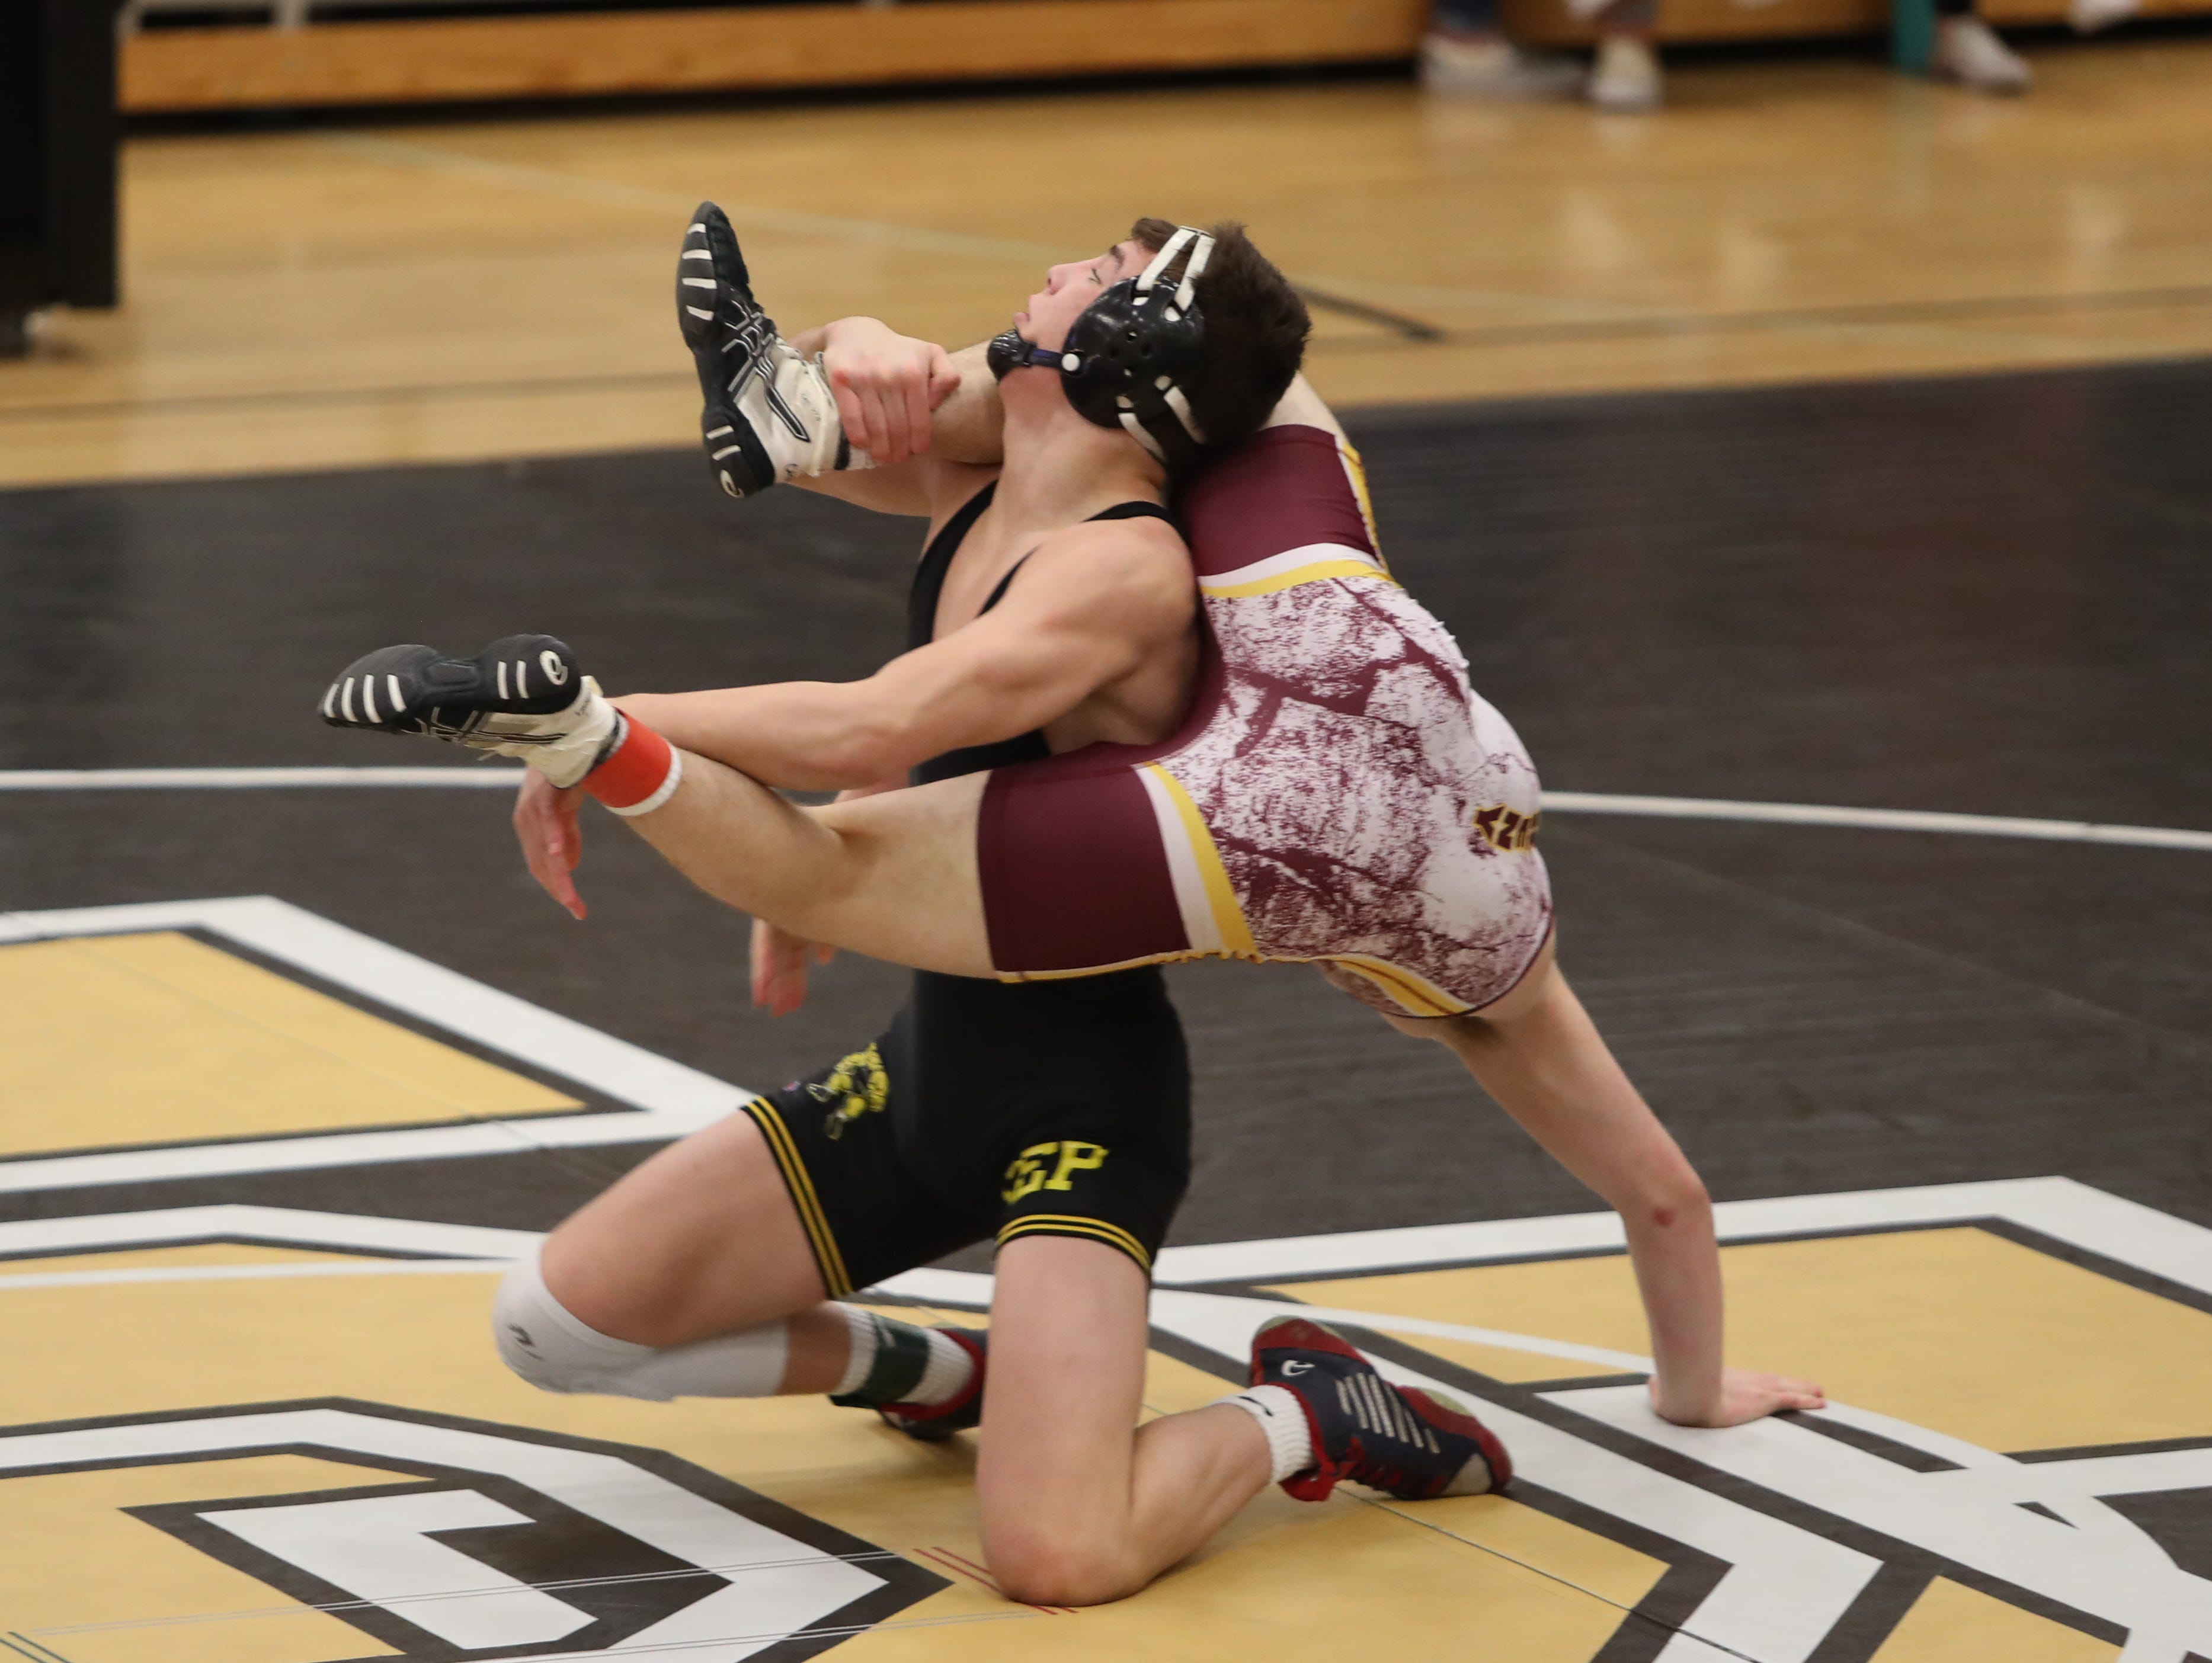 Southeast Polk's Cade DeVos controls the legs of Ankeny's Mo Watson at 160 pounds. DeVos won by fall in 1:36. Southeast Polk defeated Ankeny 57-17 in a Class 3A regional dual Feb. 6 at Southeast Polk.